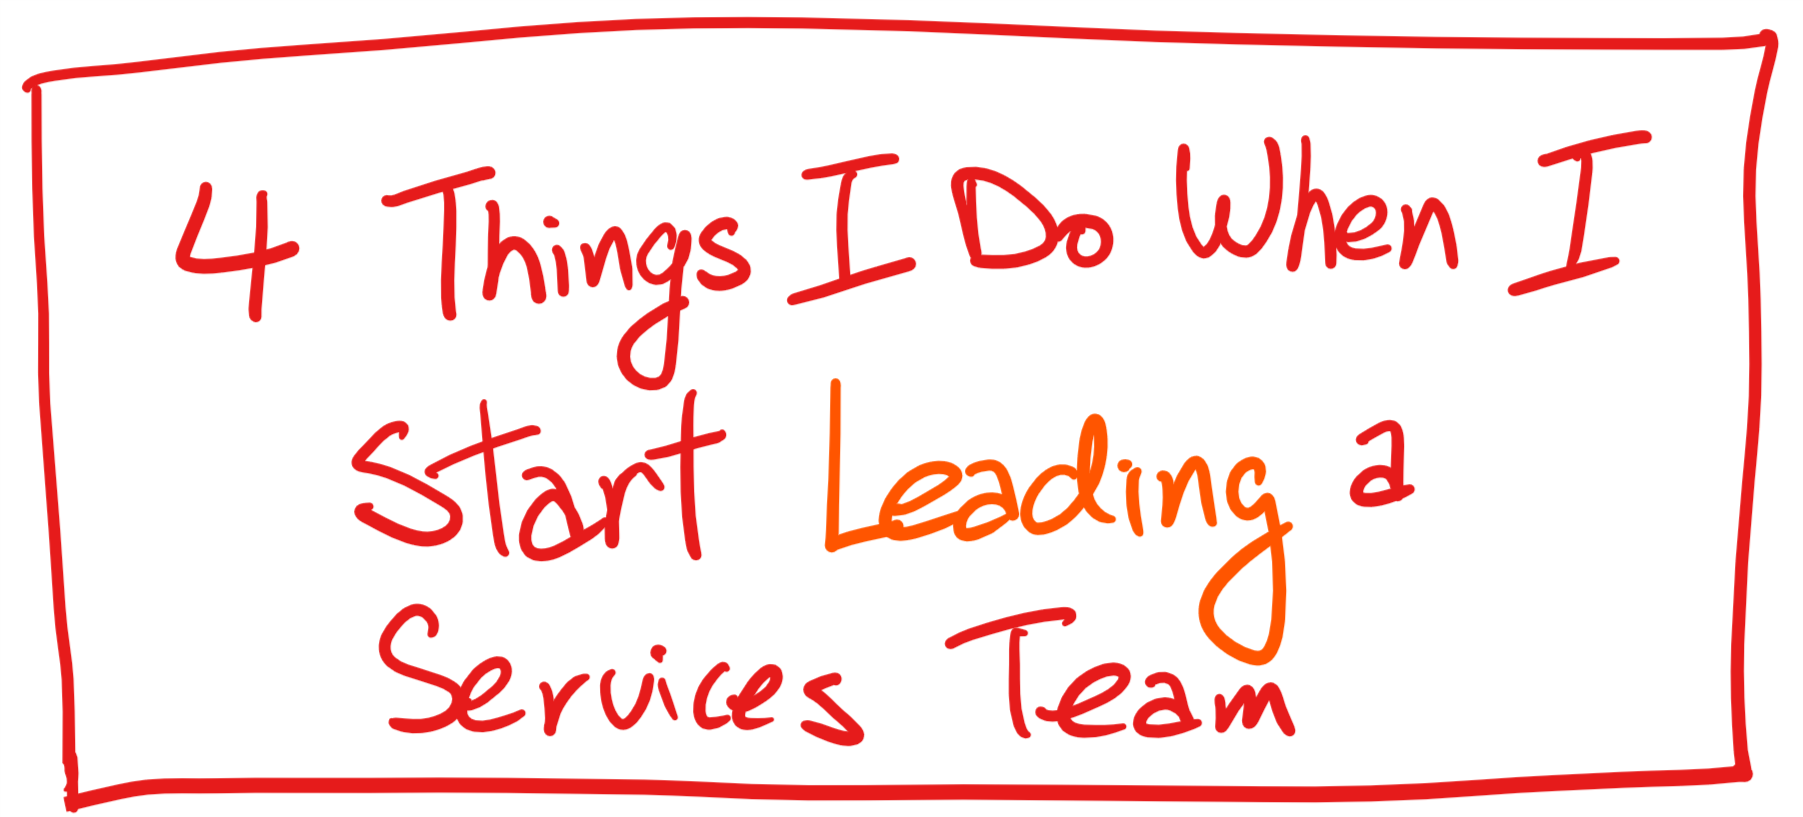 4 things i dowhen i start leading.png